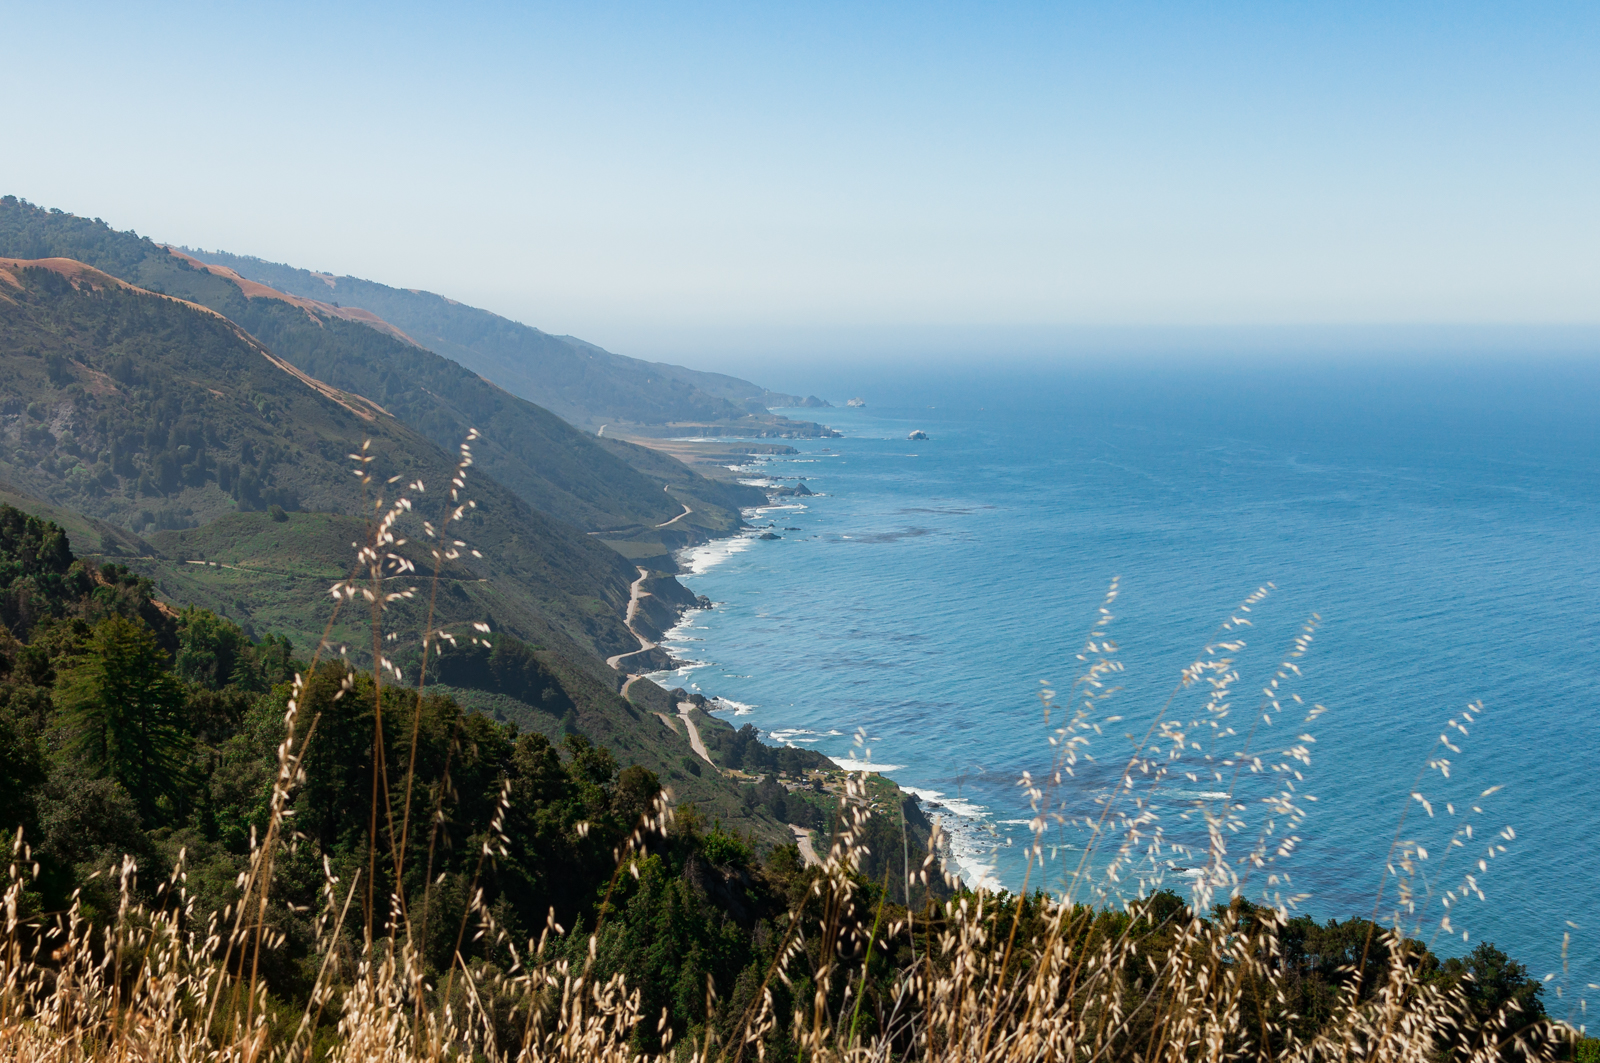 Overall, a very enjoyable hike. I would definitely do it if you choose to go backpacking in Big Sur or anywhere along the California central coast - we're definitely going to do it again in the future with more people.